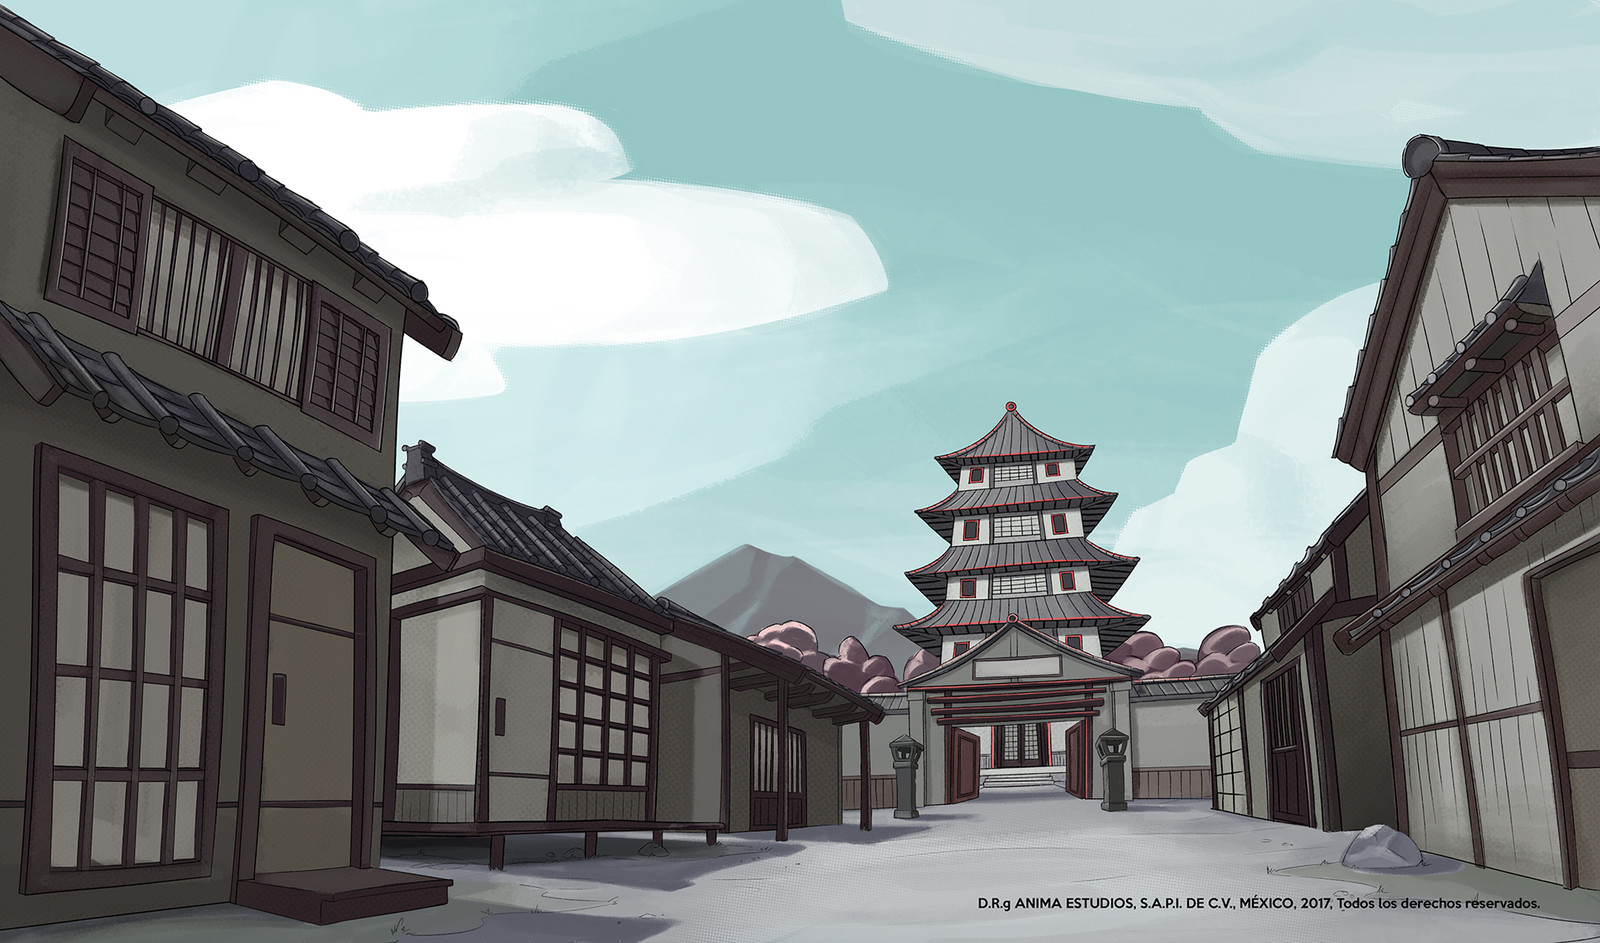 Street view of the japanese village.